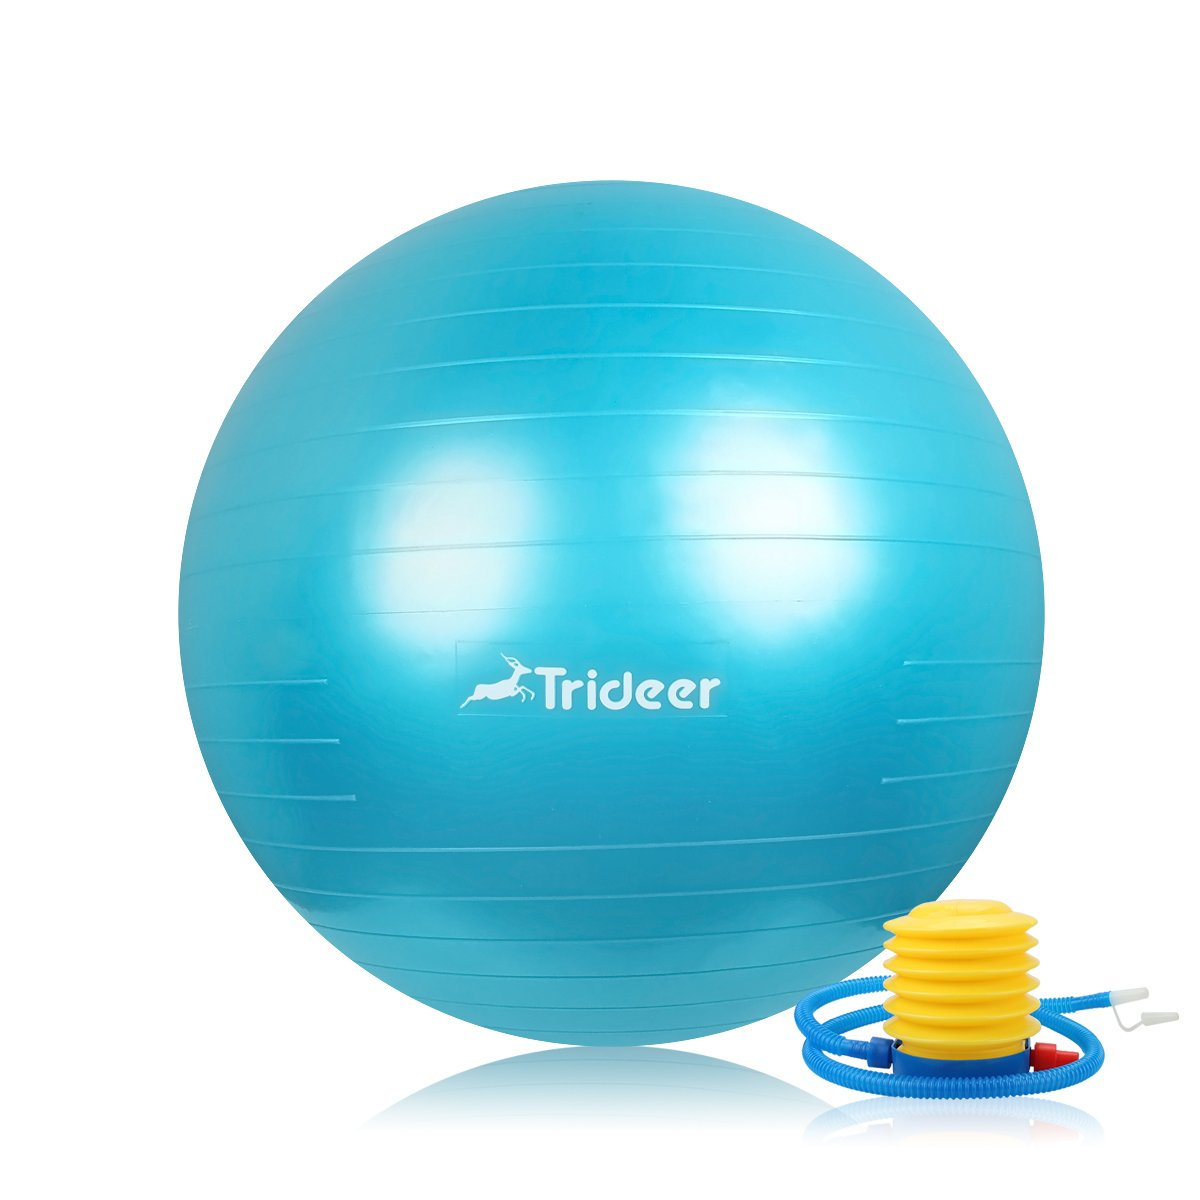 Trideer Exercise Ball (Multiple Color), Yoga Ball, Birthing Ball with Quick Pump, Anti-Burst & Extra Thick, Heavy Duty Ball Chair, Stability Ball Supports 2200lbs (Bright Turkis, M (48-55cm))